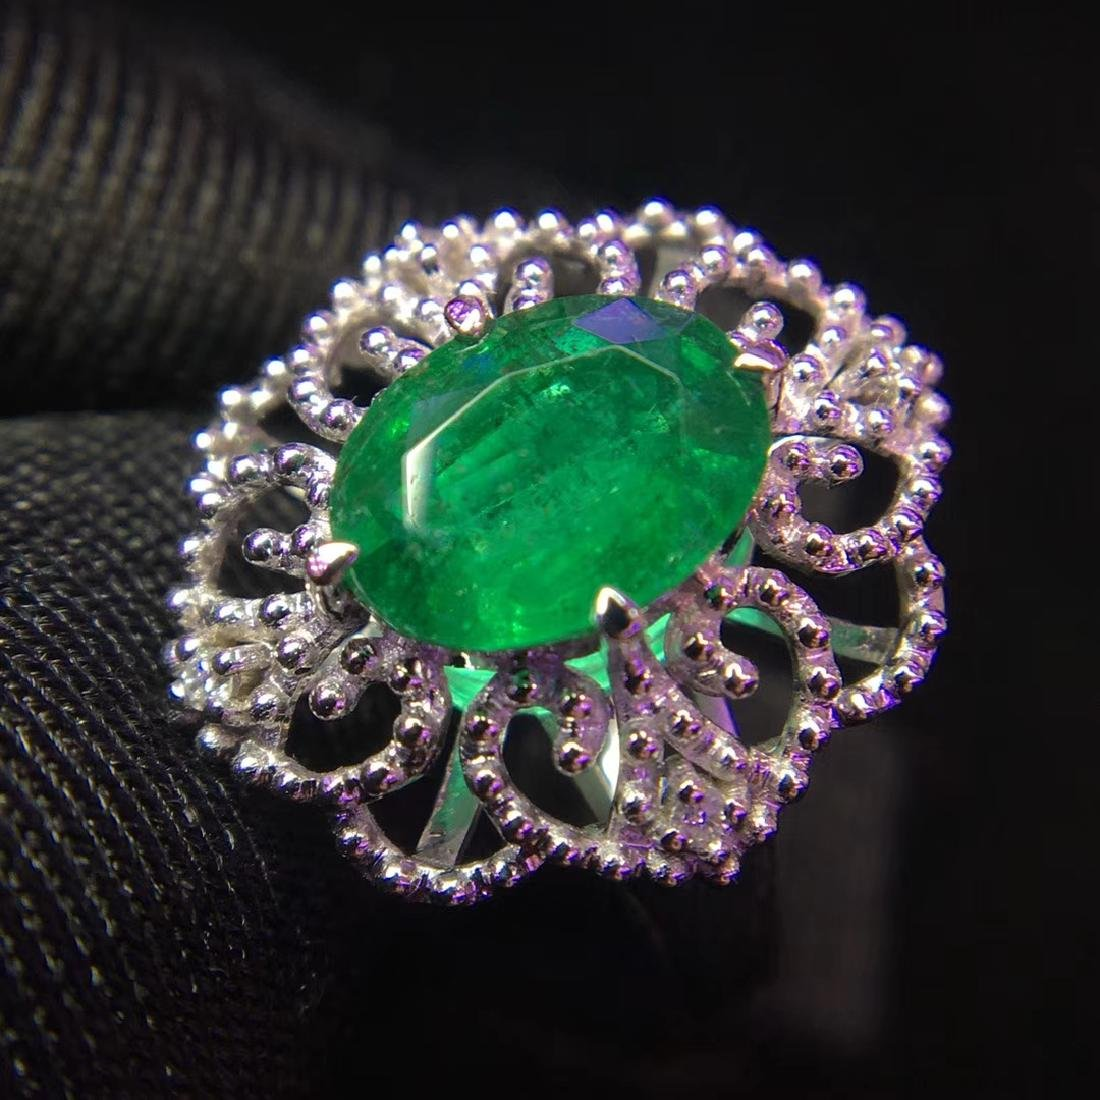 1.48ct Emerald Ring in 18kt White Gold - 3